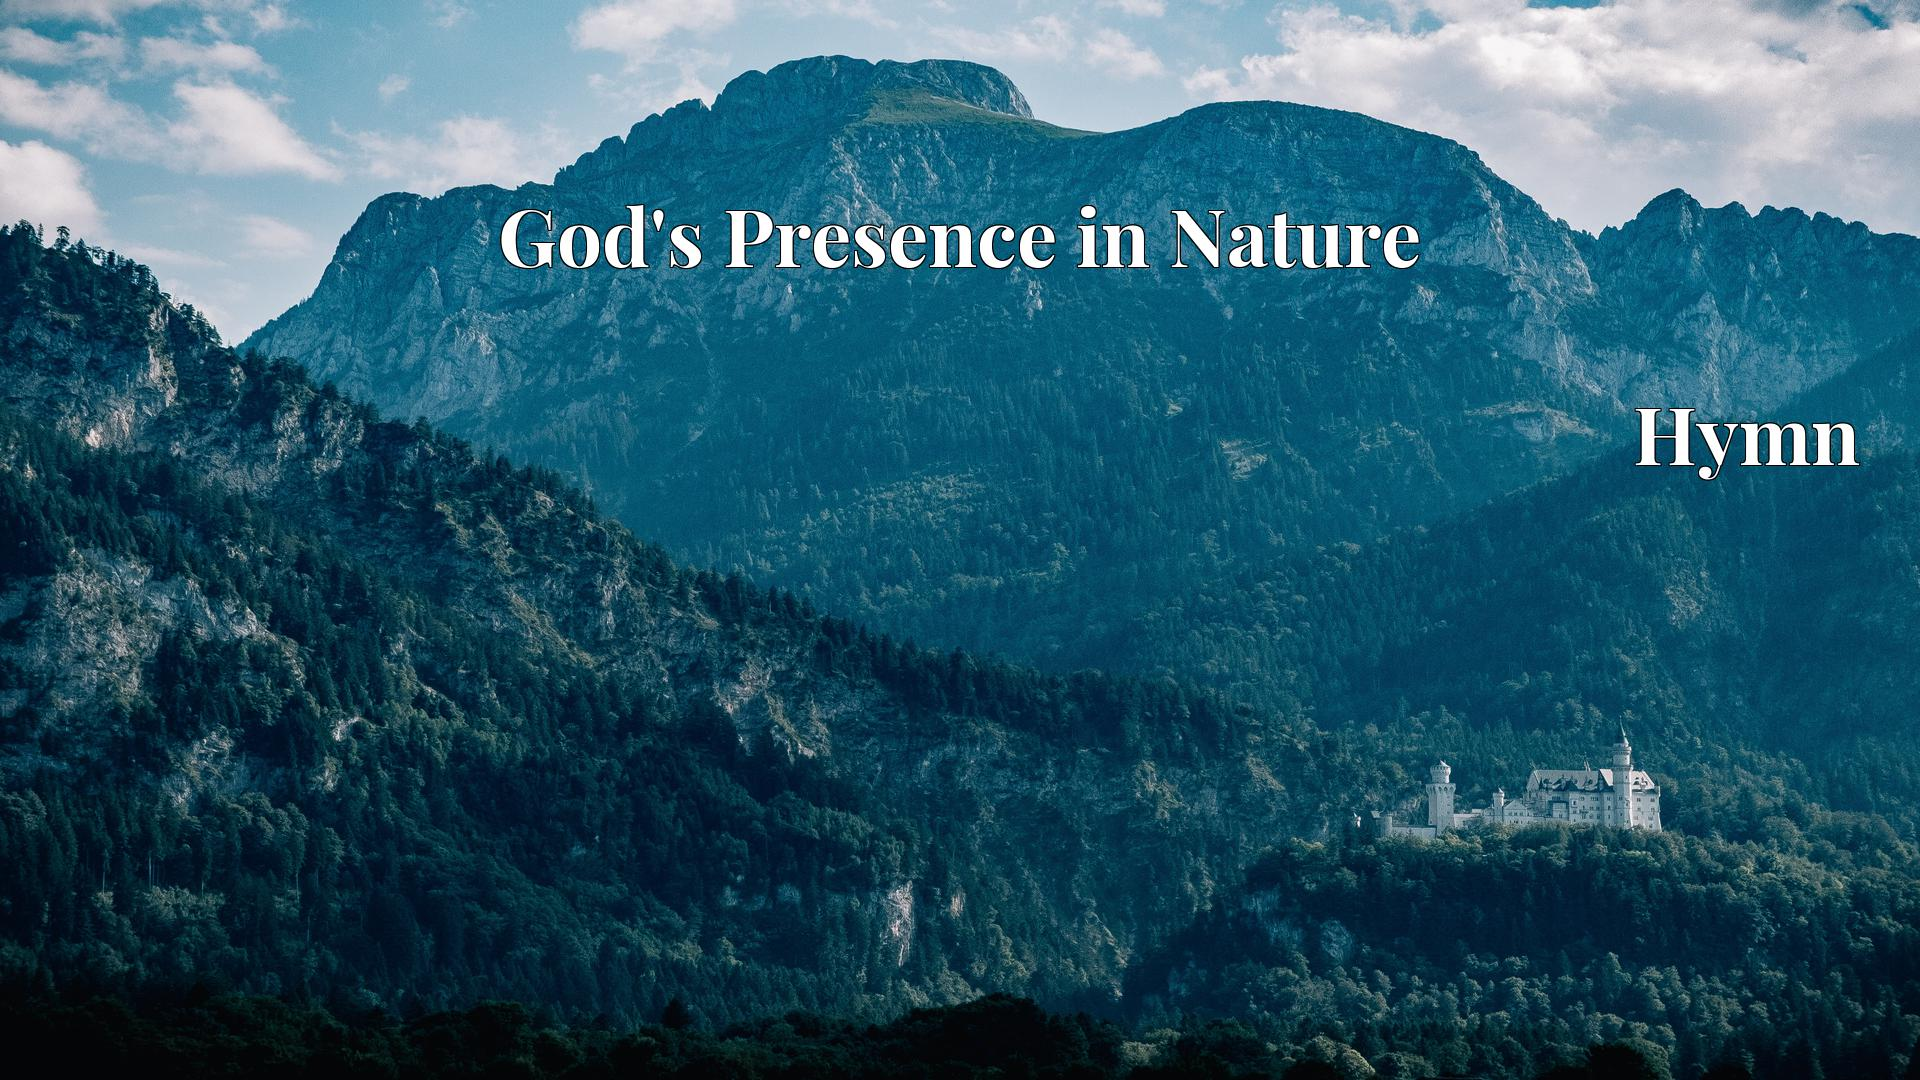 God's Presence in Nature - Hymn